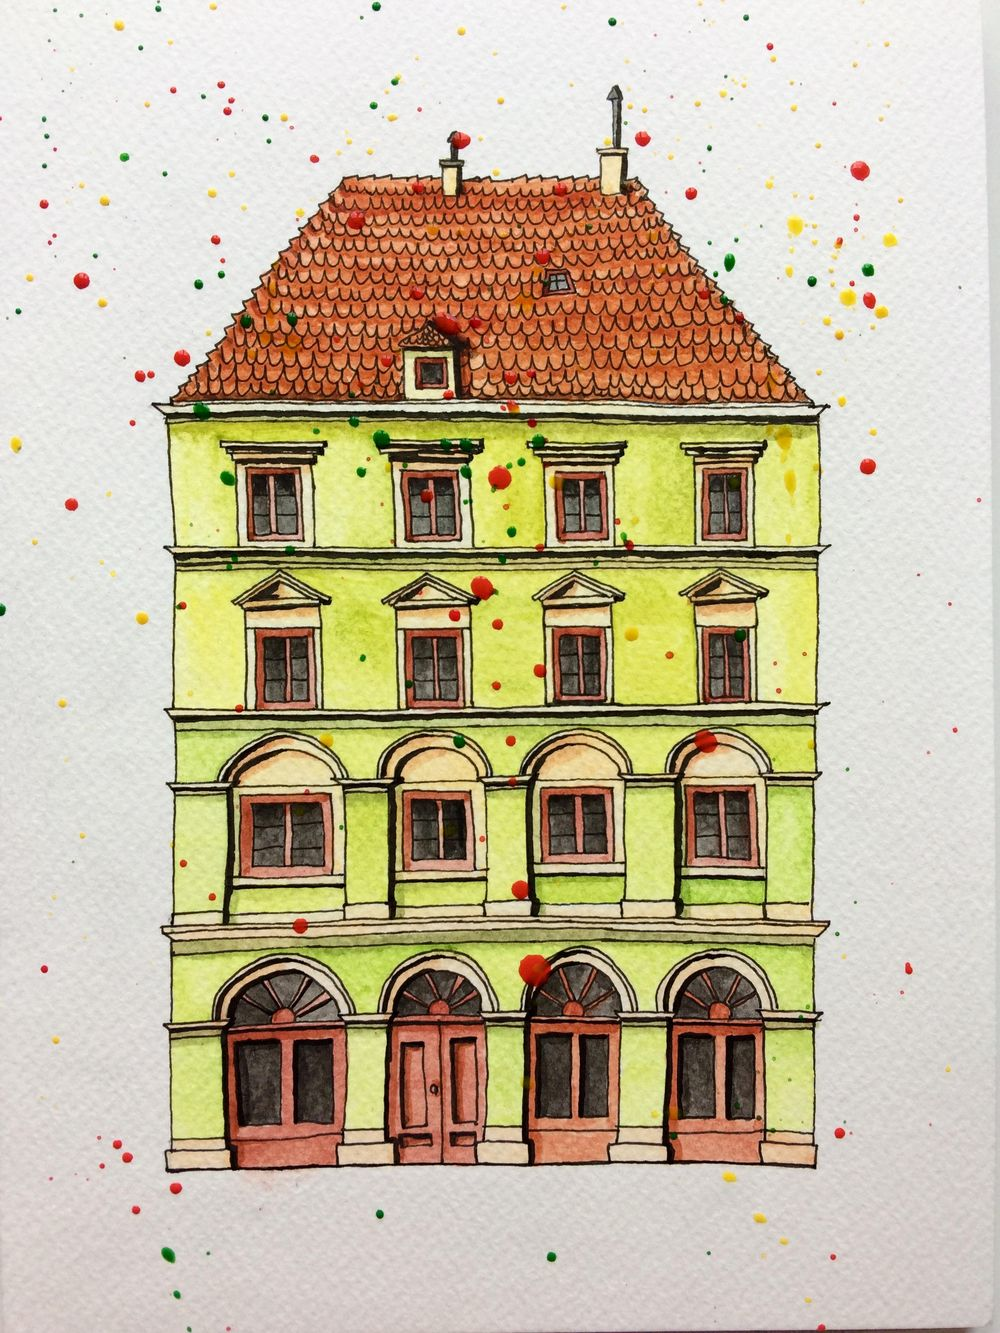 House in Vienna - image 3 - student project